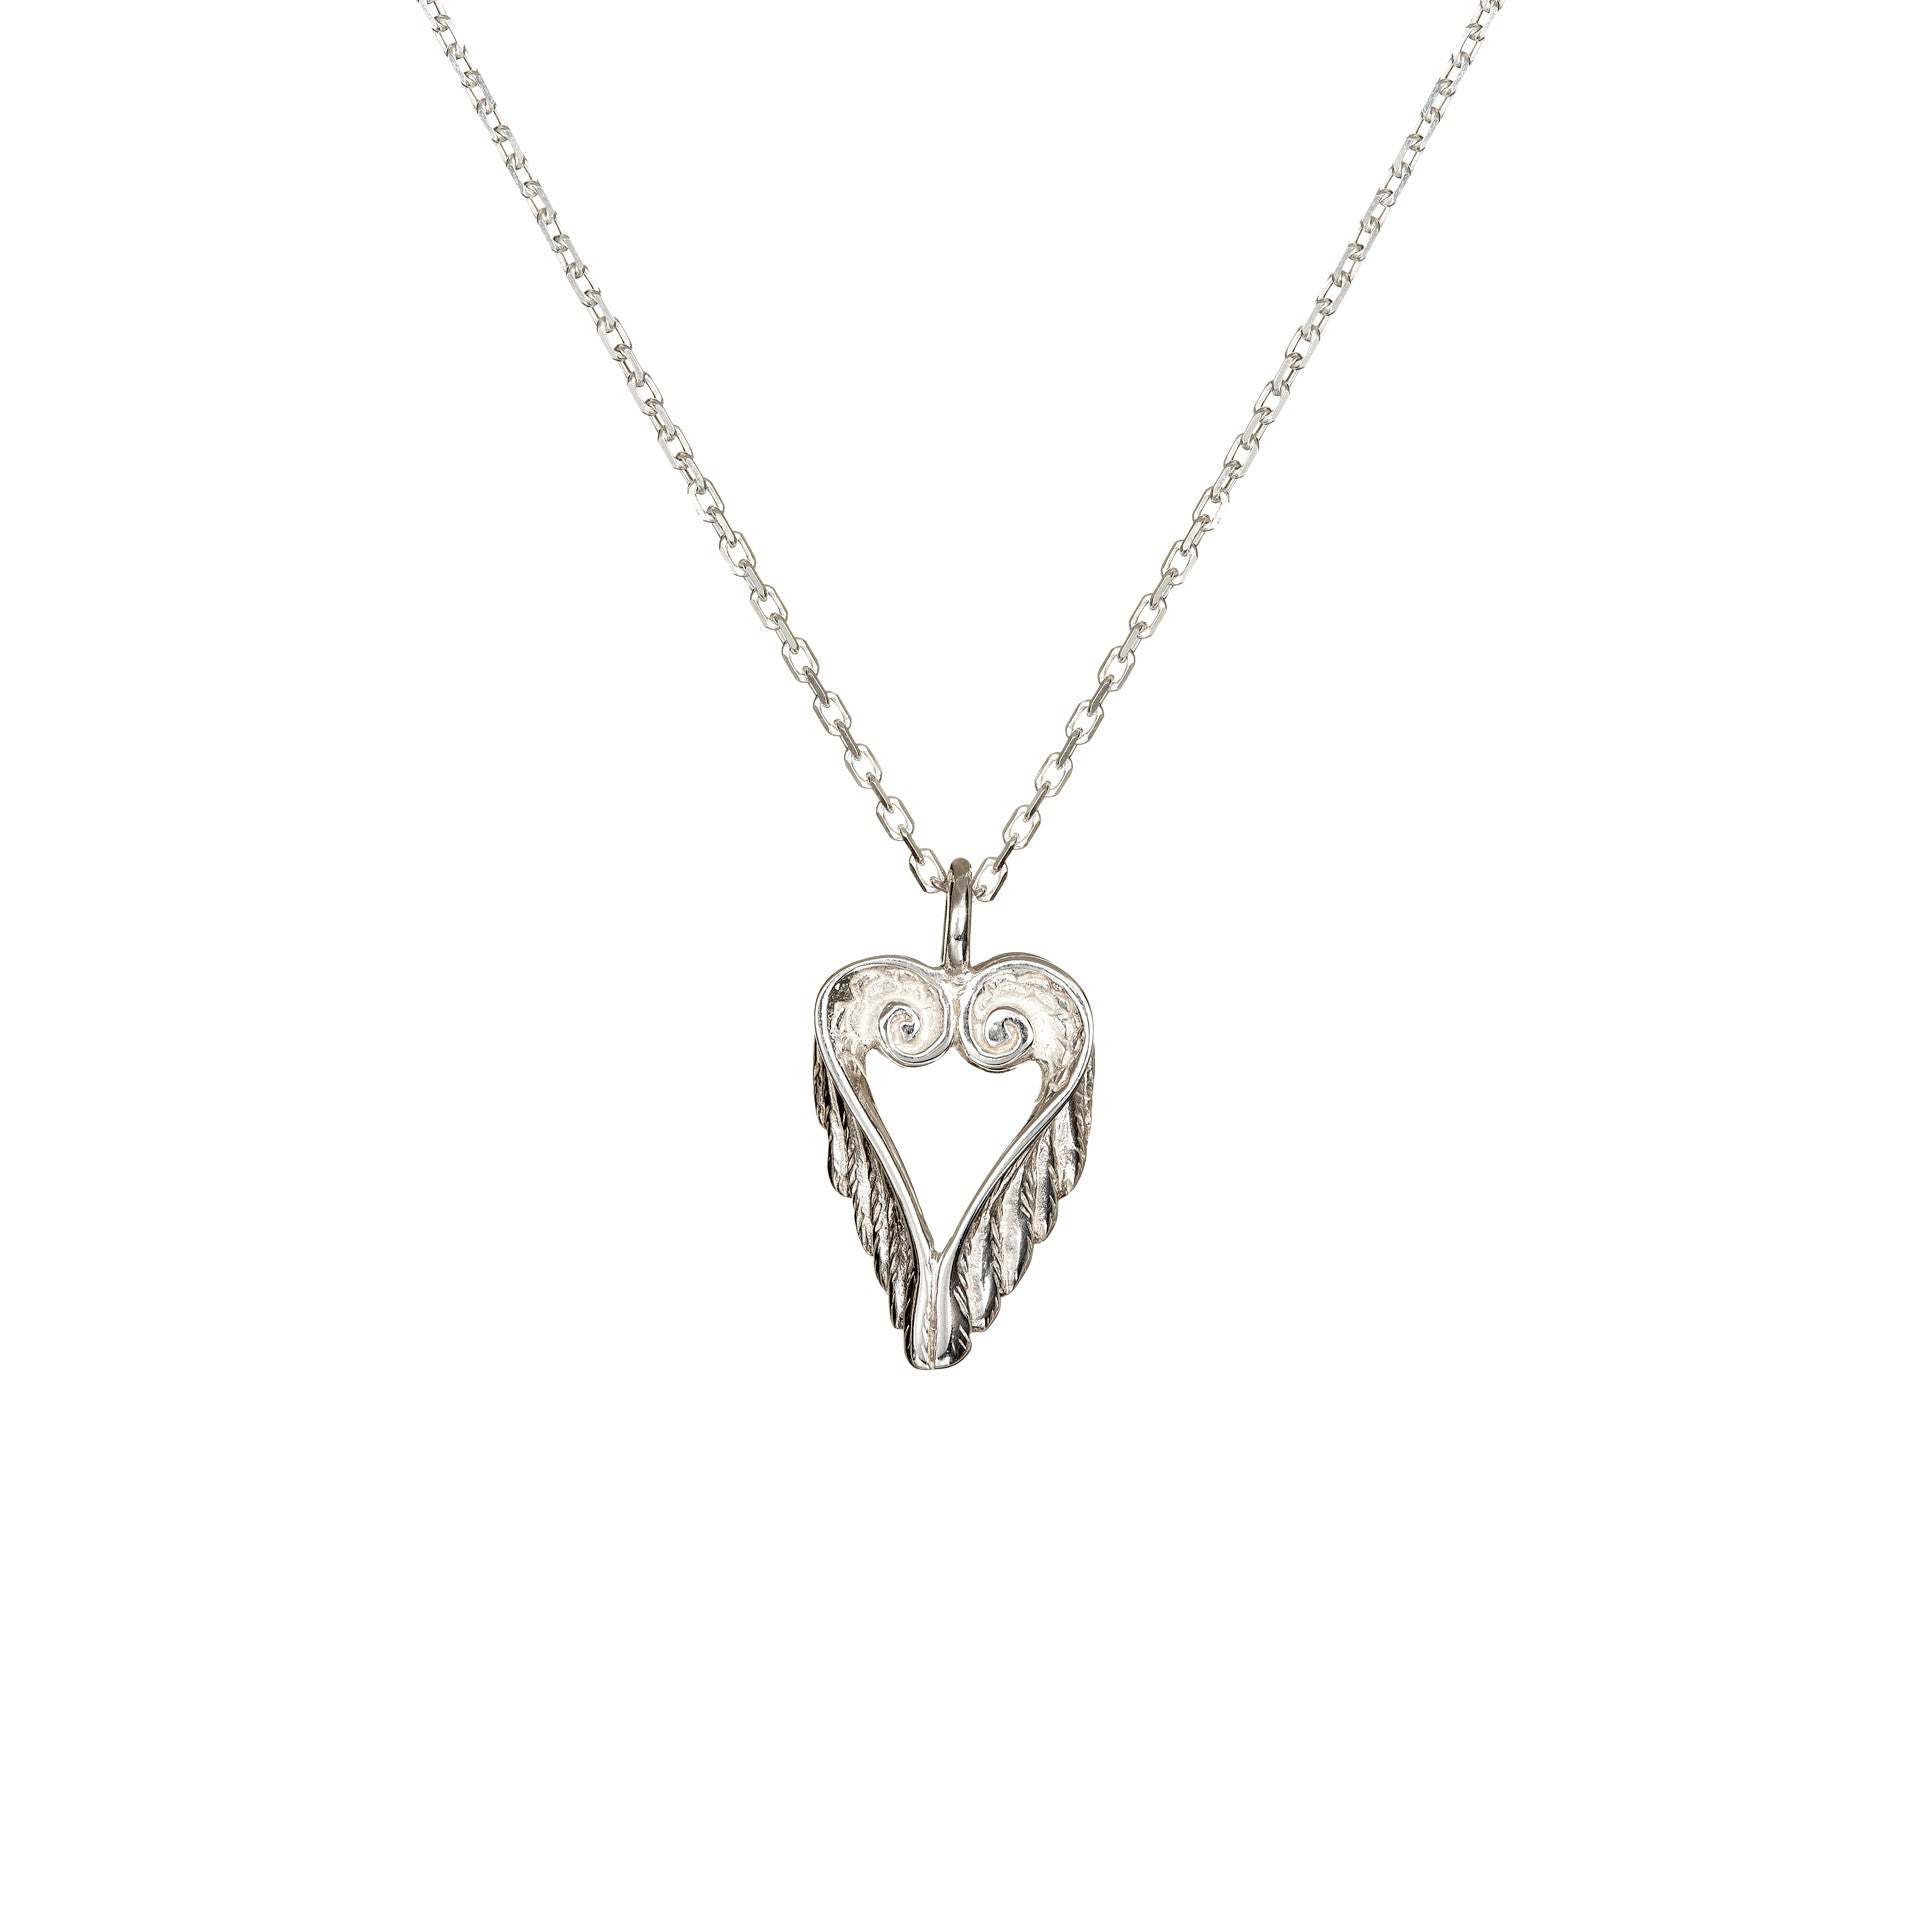 for pendant from gift angel necklace shaped new woman hot engagement wings with heart necklaces in jewelry zircon fashion aaa design item silver